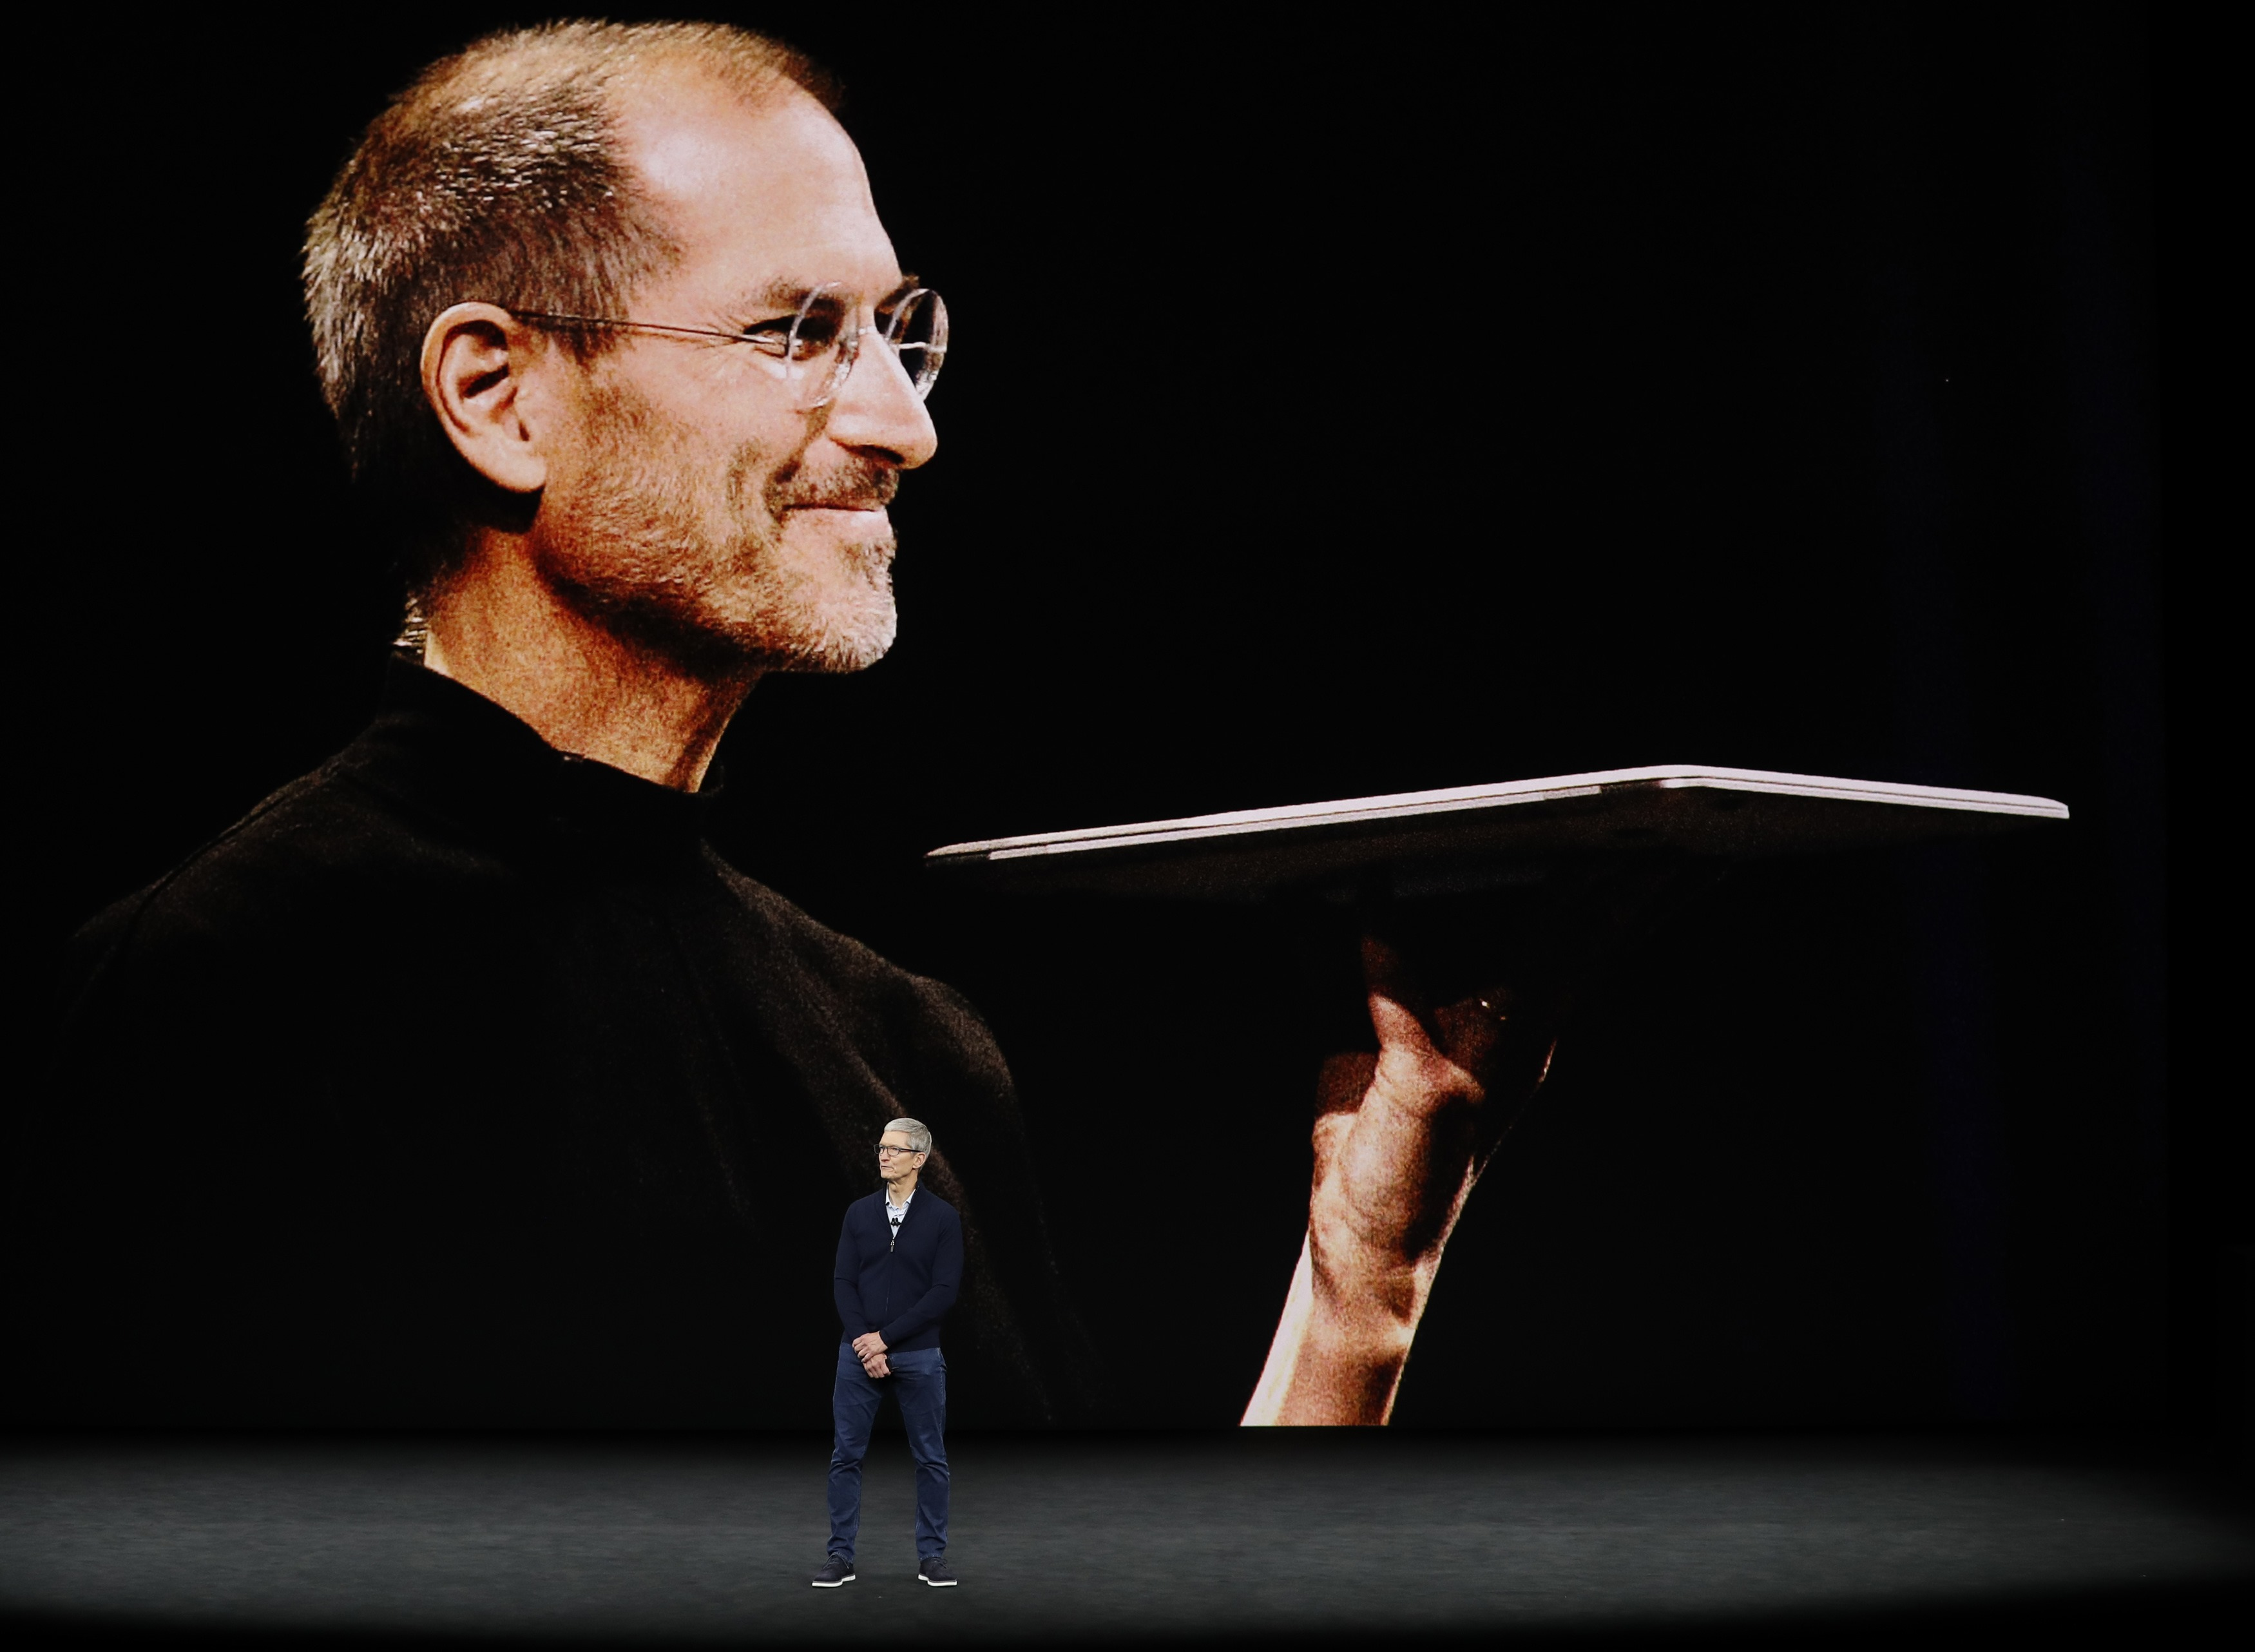 Tim Cook, CEO of Apple, speaks as a tribute video to the late Apple co-founder Steve Jobs plays behind him during a product launch event in Cupertino, Calif., on Sept. 12, 2017. (REUTERS/Stephen Lam)